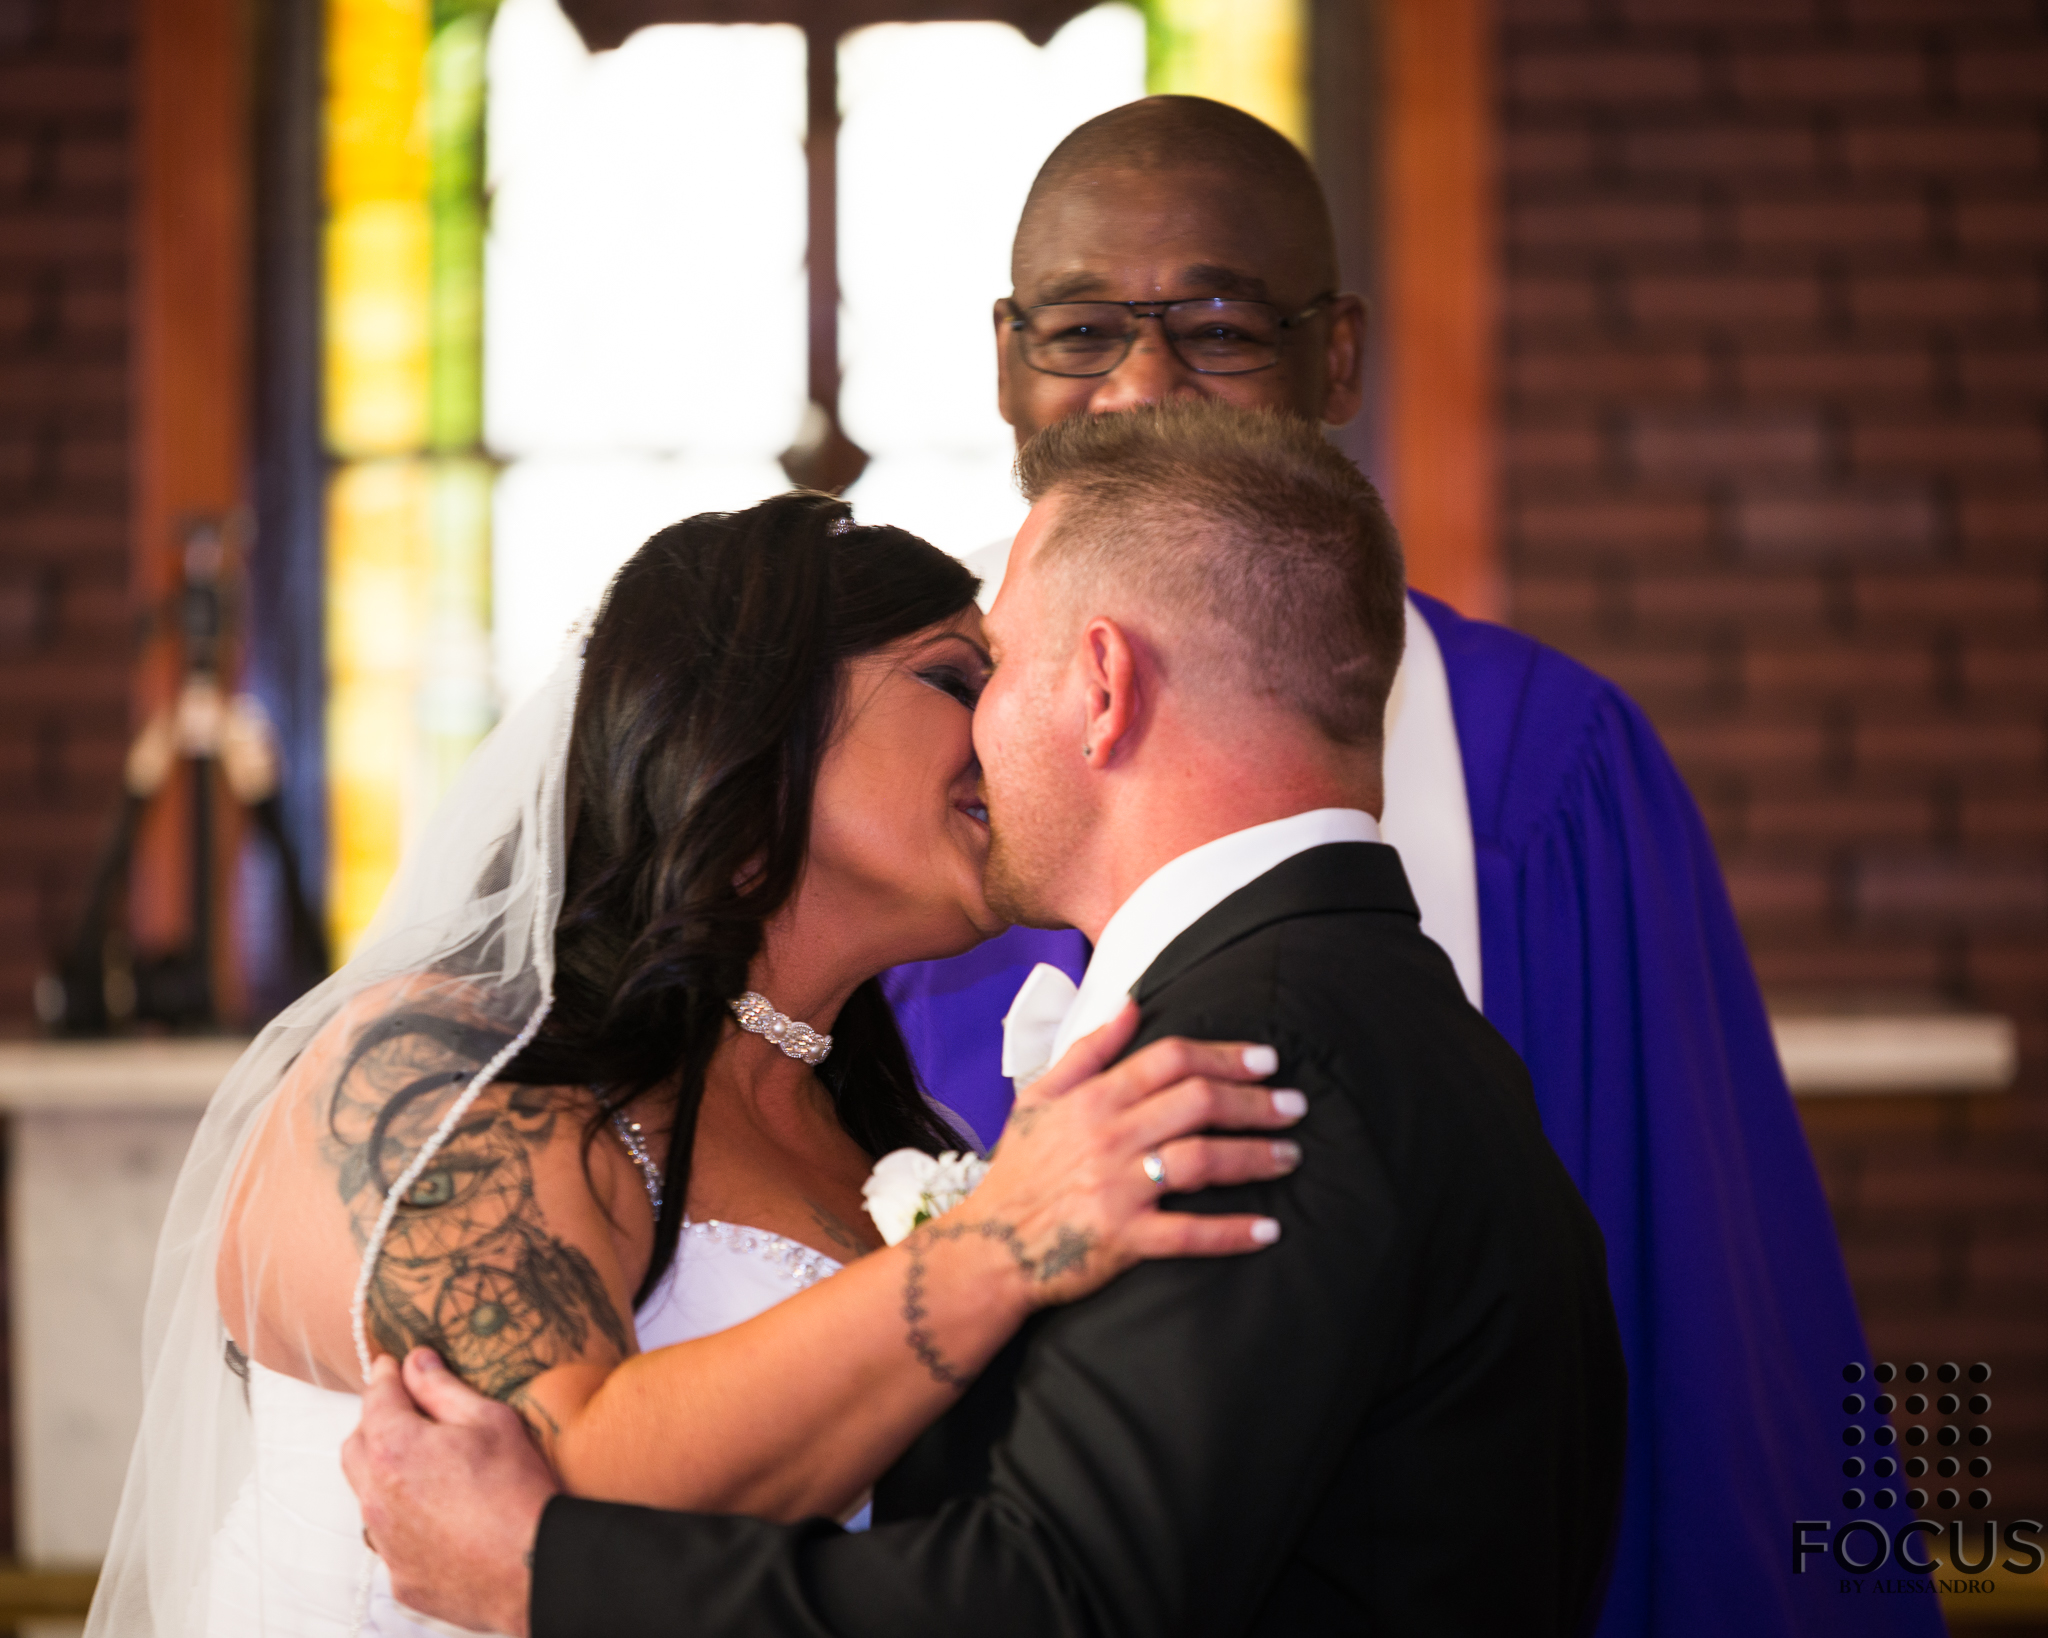 Denise and Dave wedding 2017 (274 of 785).jpg